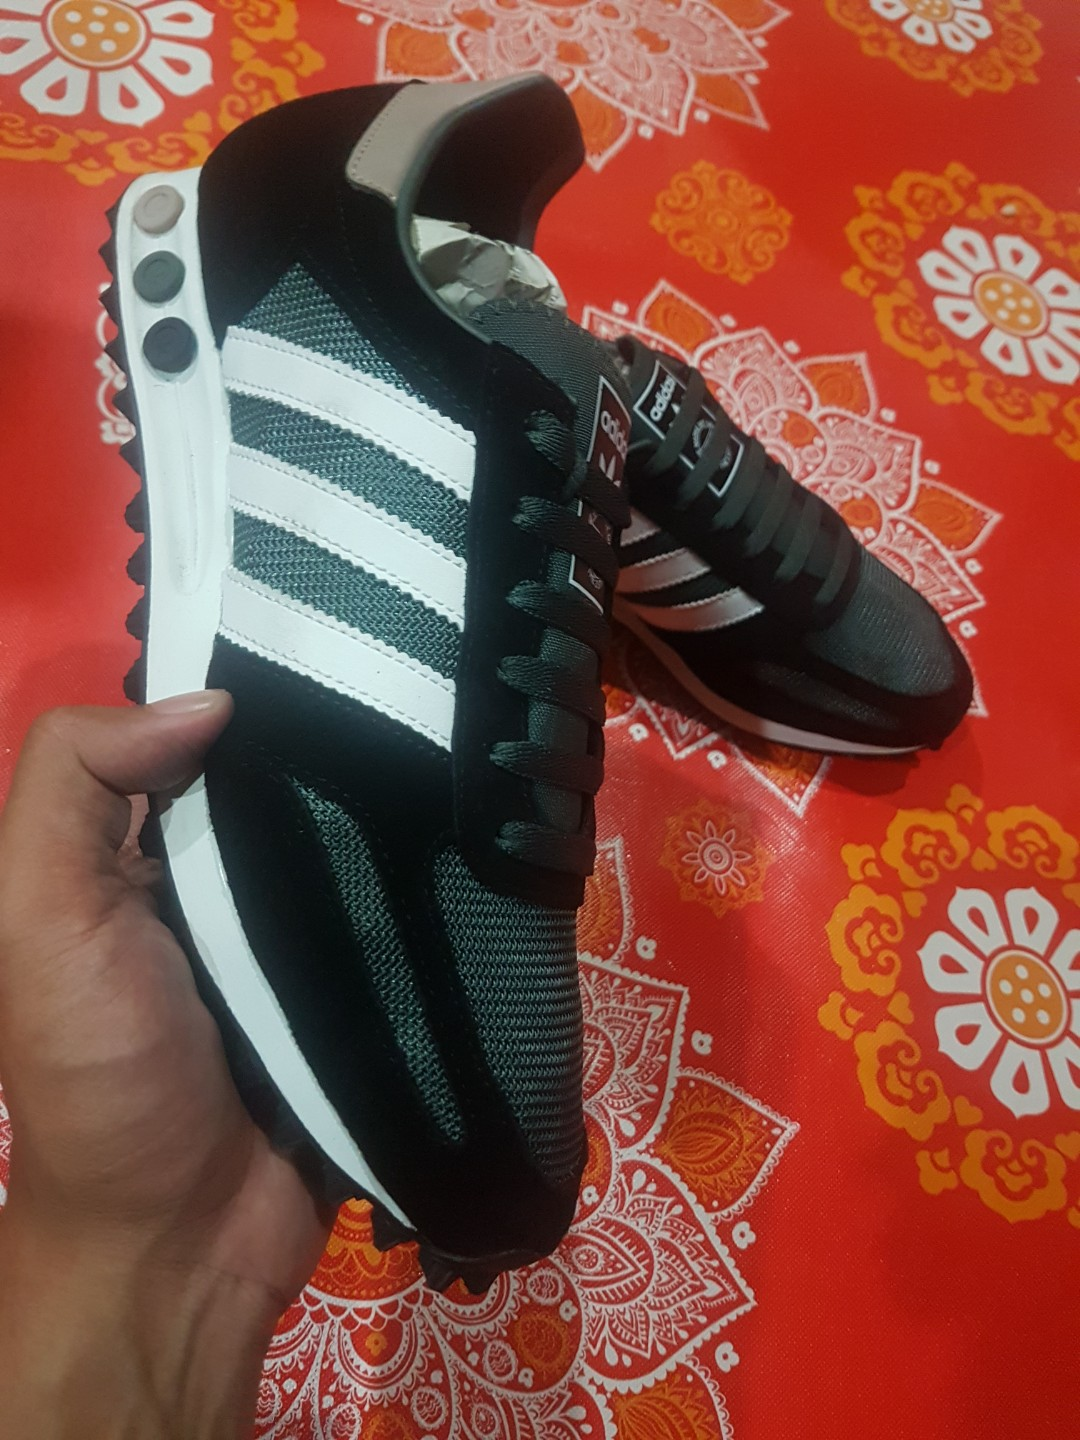 brand new 19d4e 58e38 Adidas LA Trainer, Men s Fashion, Footwear, Sneakers on Carousell